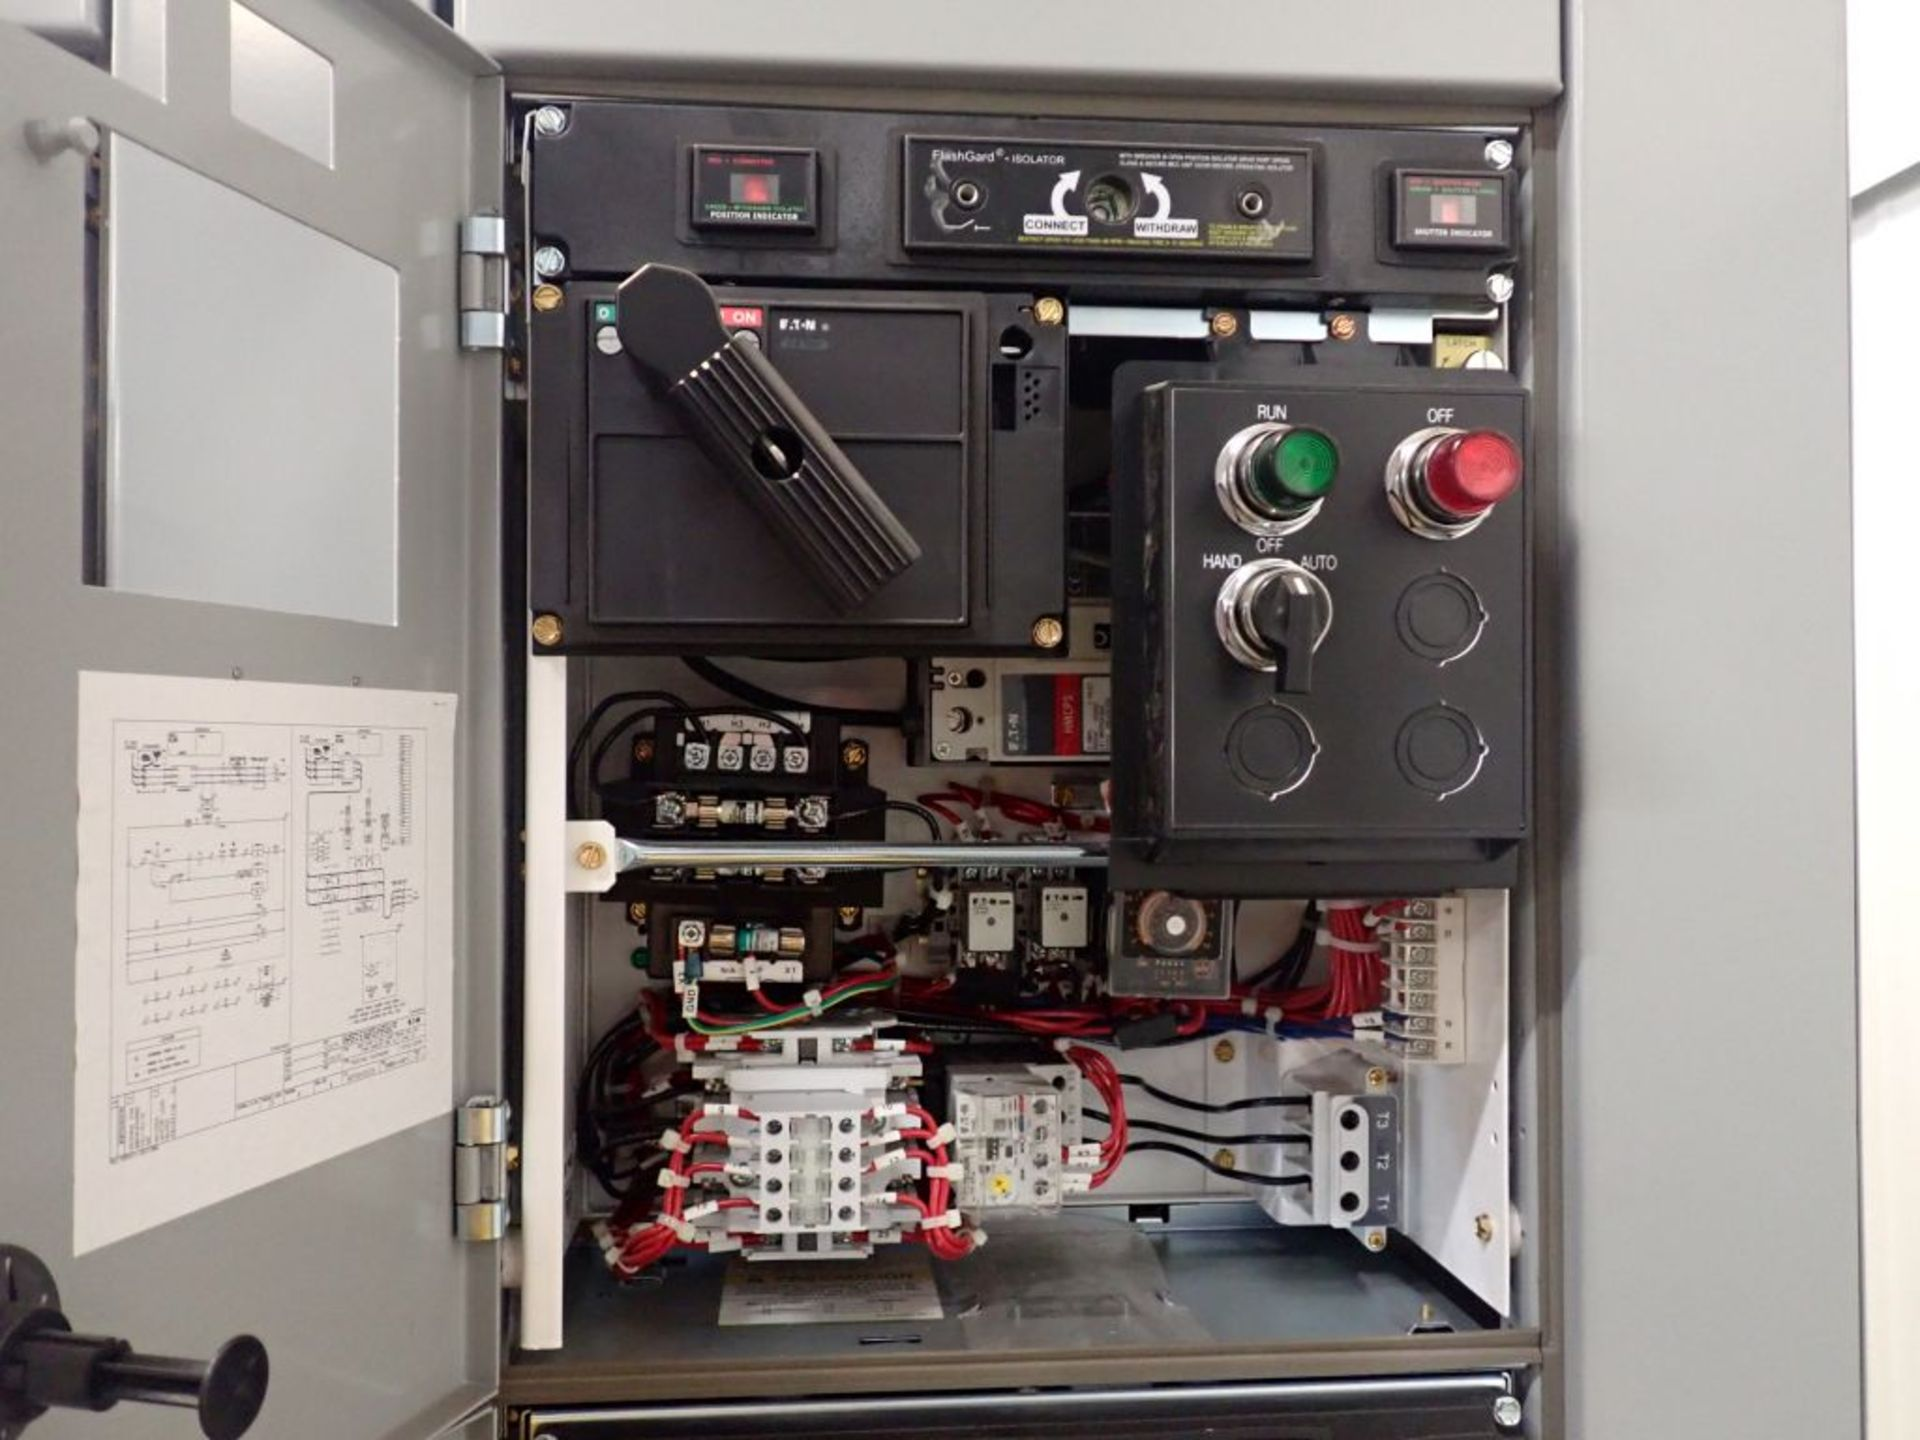 Eaton Freedom Flashgard Motor Control Center w/Components | (5) F206-15A-10HP; (4) F206-30A-10HP; ( - Image 64 of 84